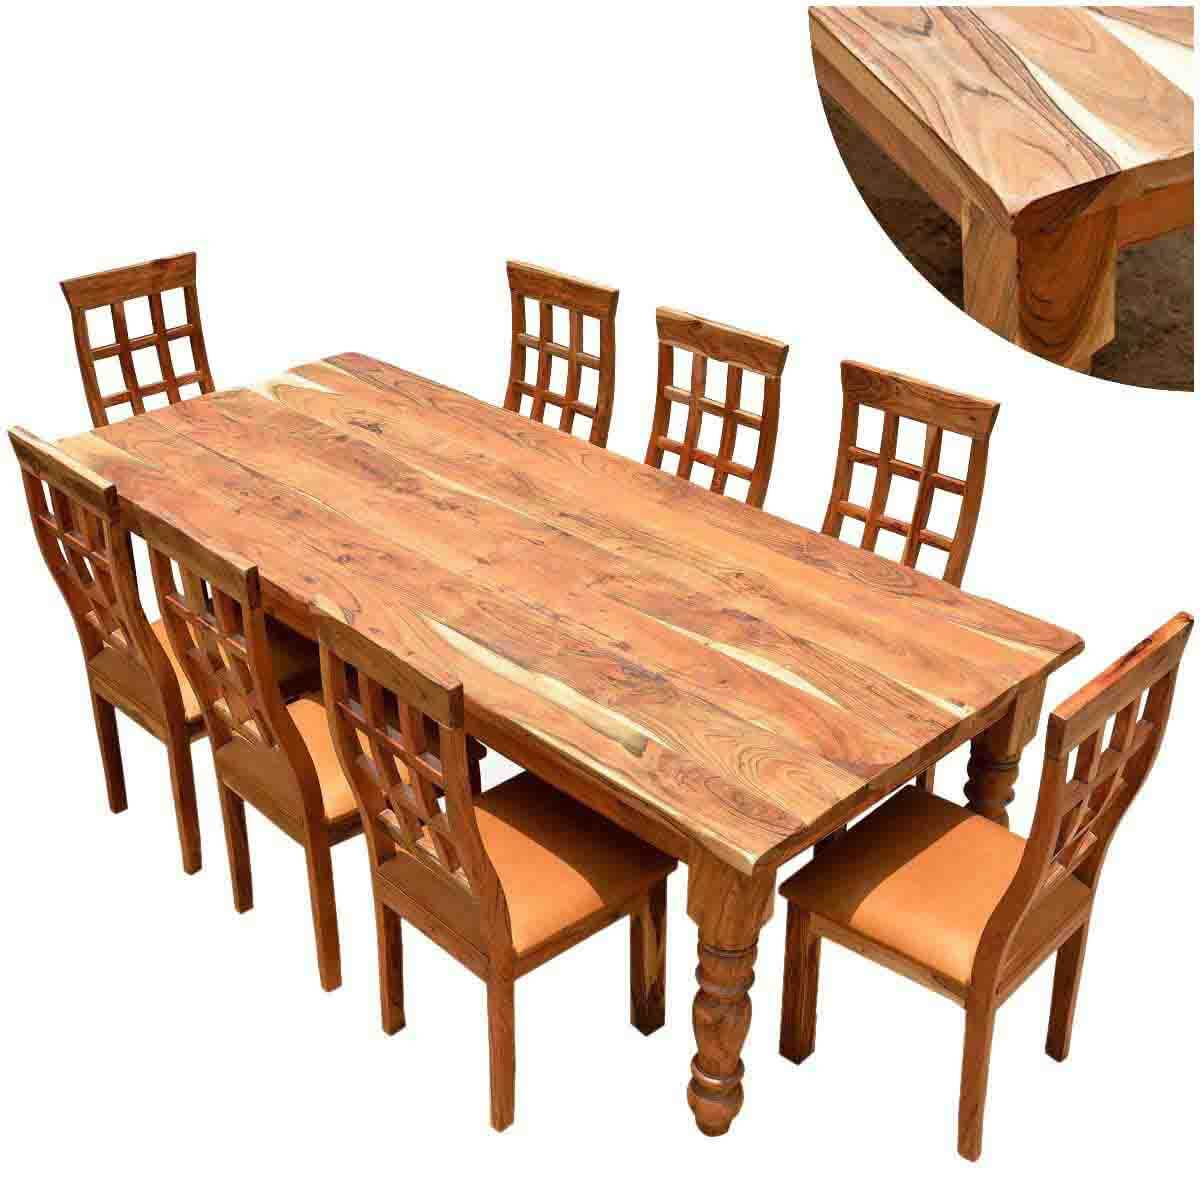 Dining Table Sets ~ Rustic dining table and chair sets sierra living concepts